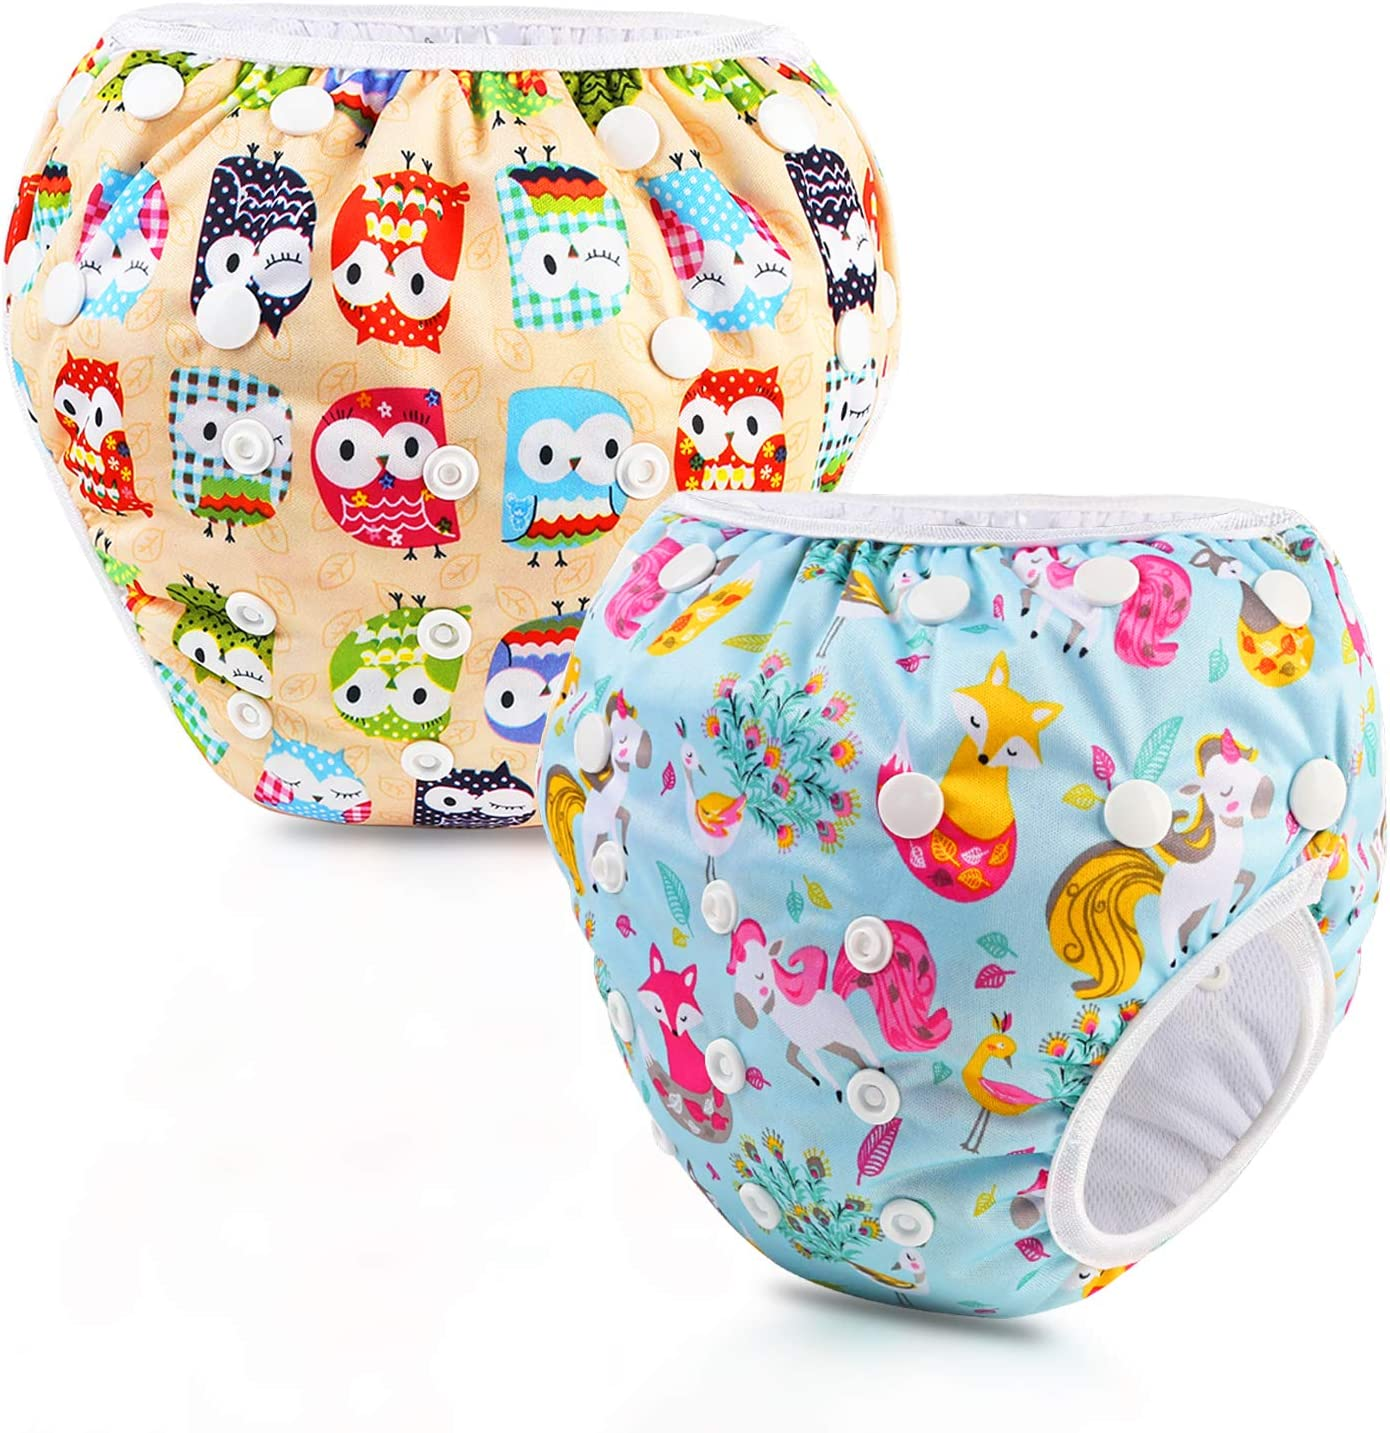 PHOGARY Swim Diaper (2 Pack), Adjustable Size for Swimming Lesson & Baby Shower